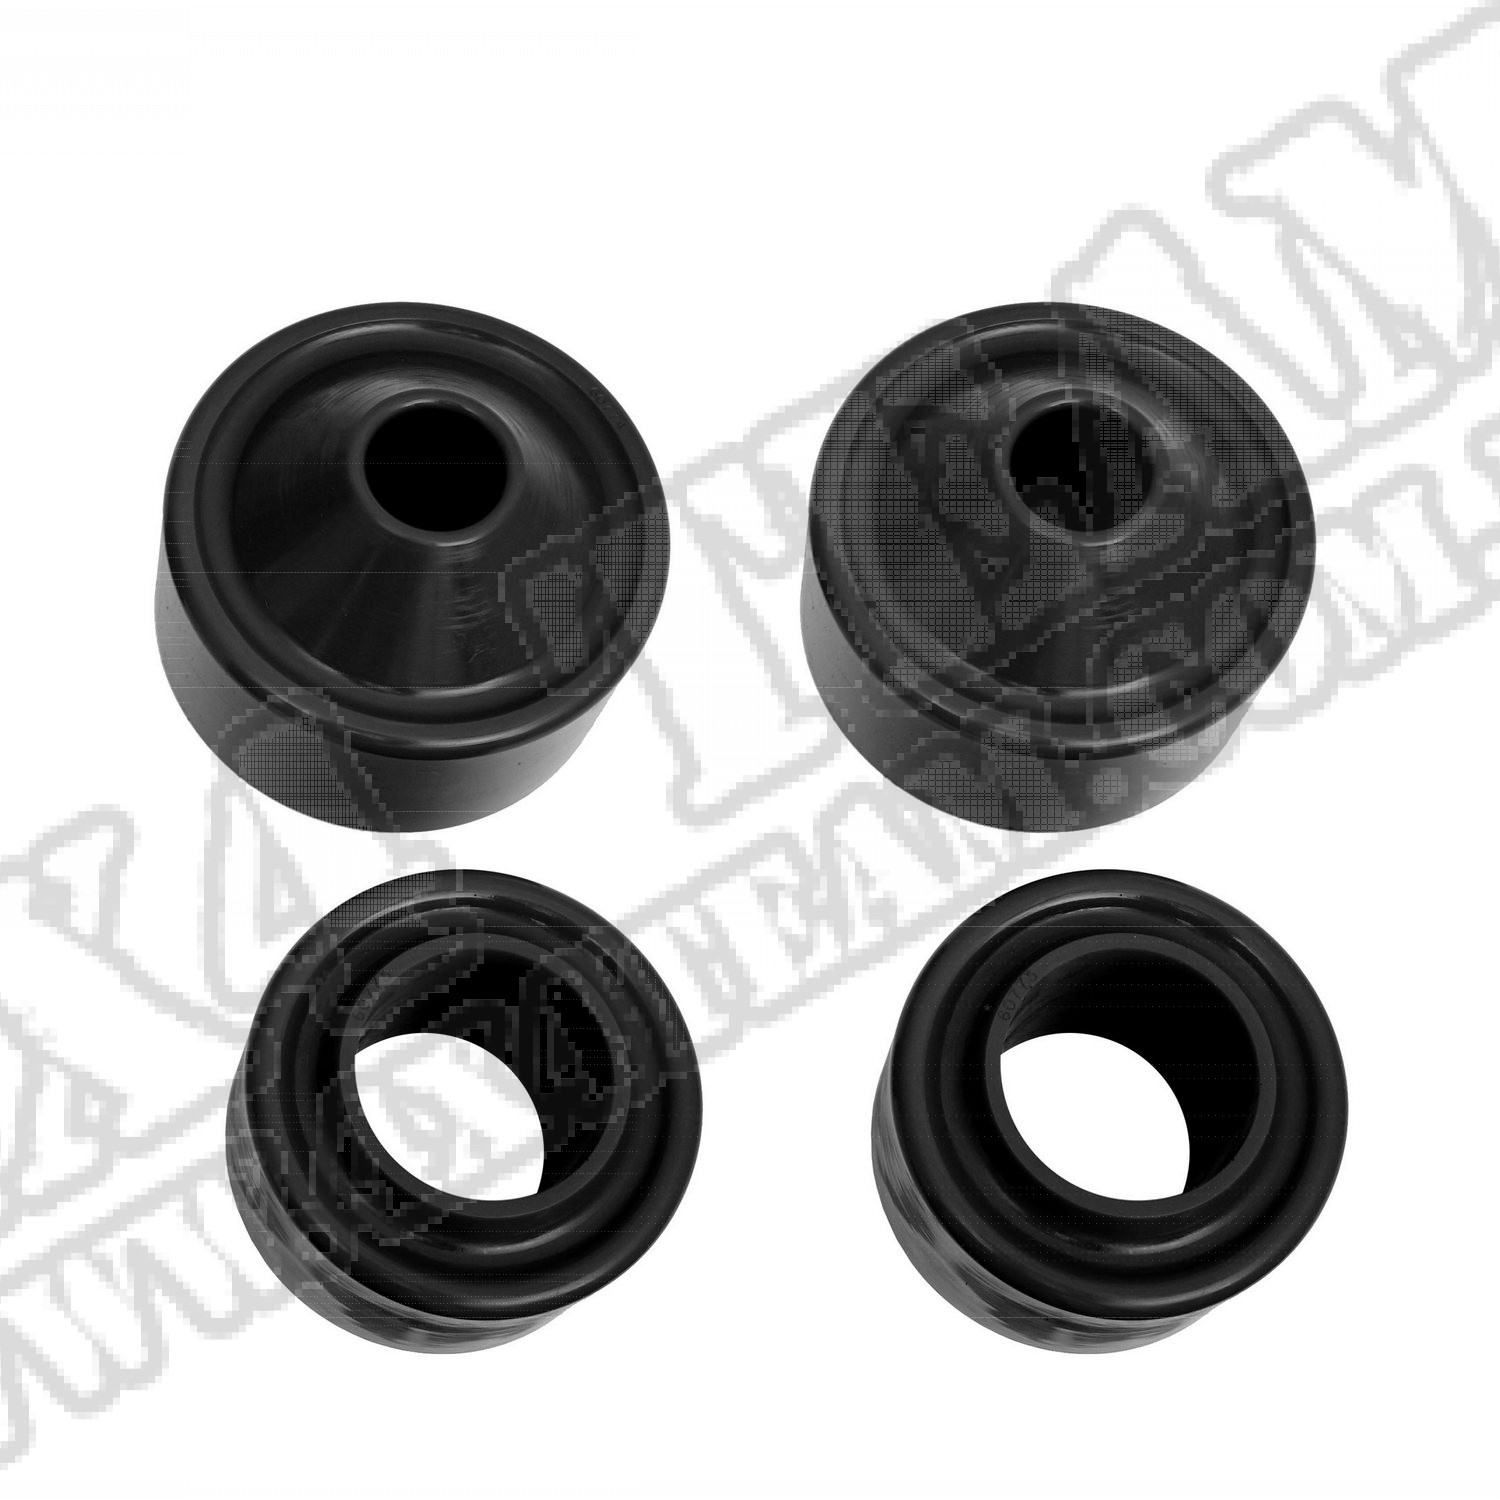 Suspension Coil Spring Spacer Kit, 1.75 Inch; 07-18 Jeep Wrangler JK